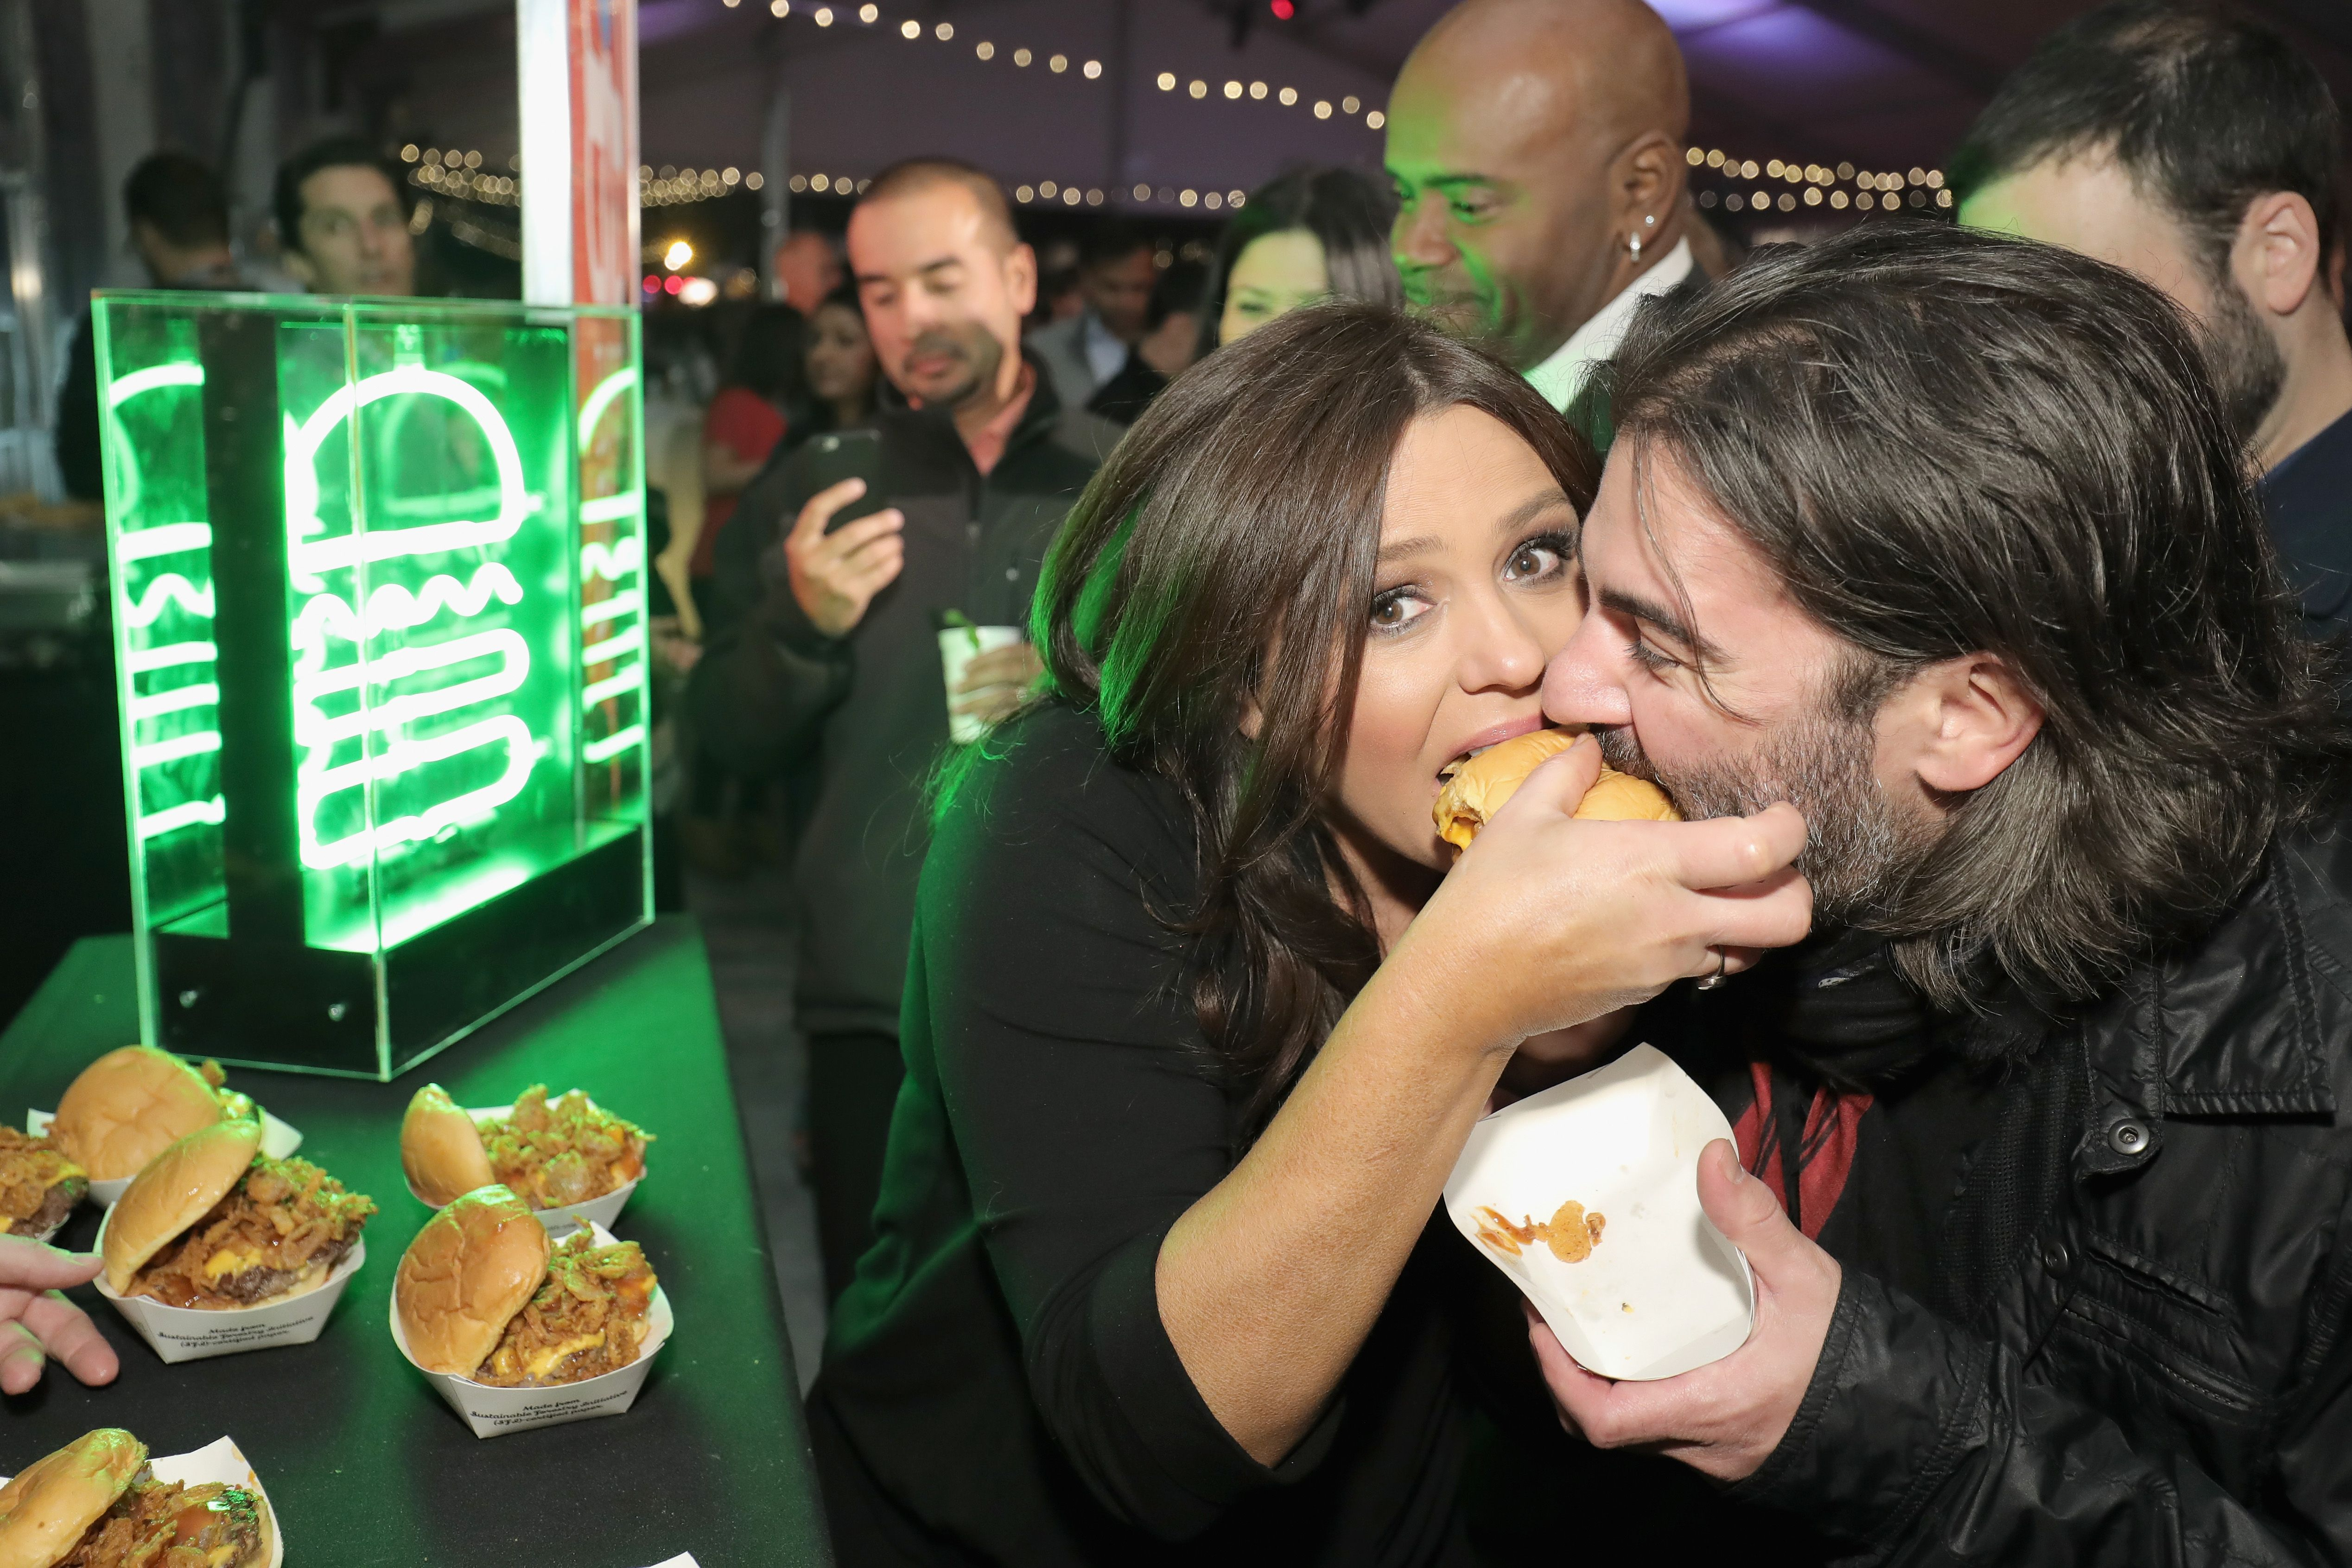 Rachael Ray and John Cusimano at the Food Network & Cooking Channel New York City Wine & Food Festival in 2016. | Photo: Getty Images